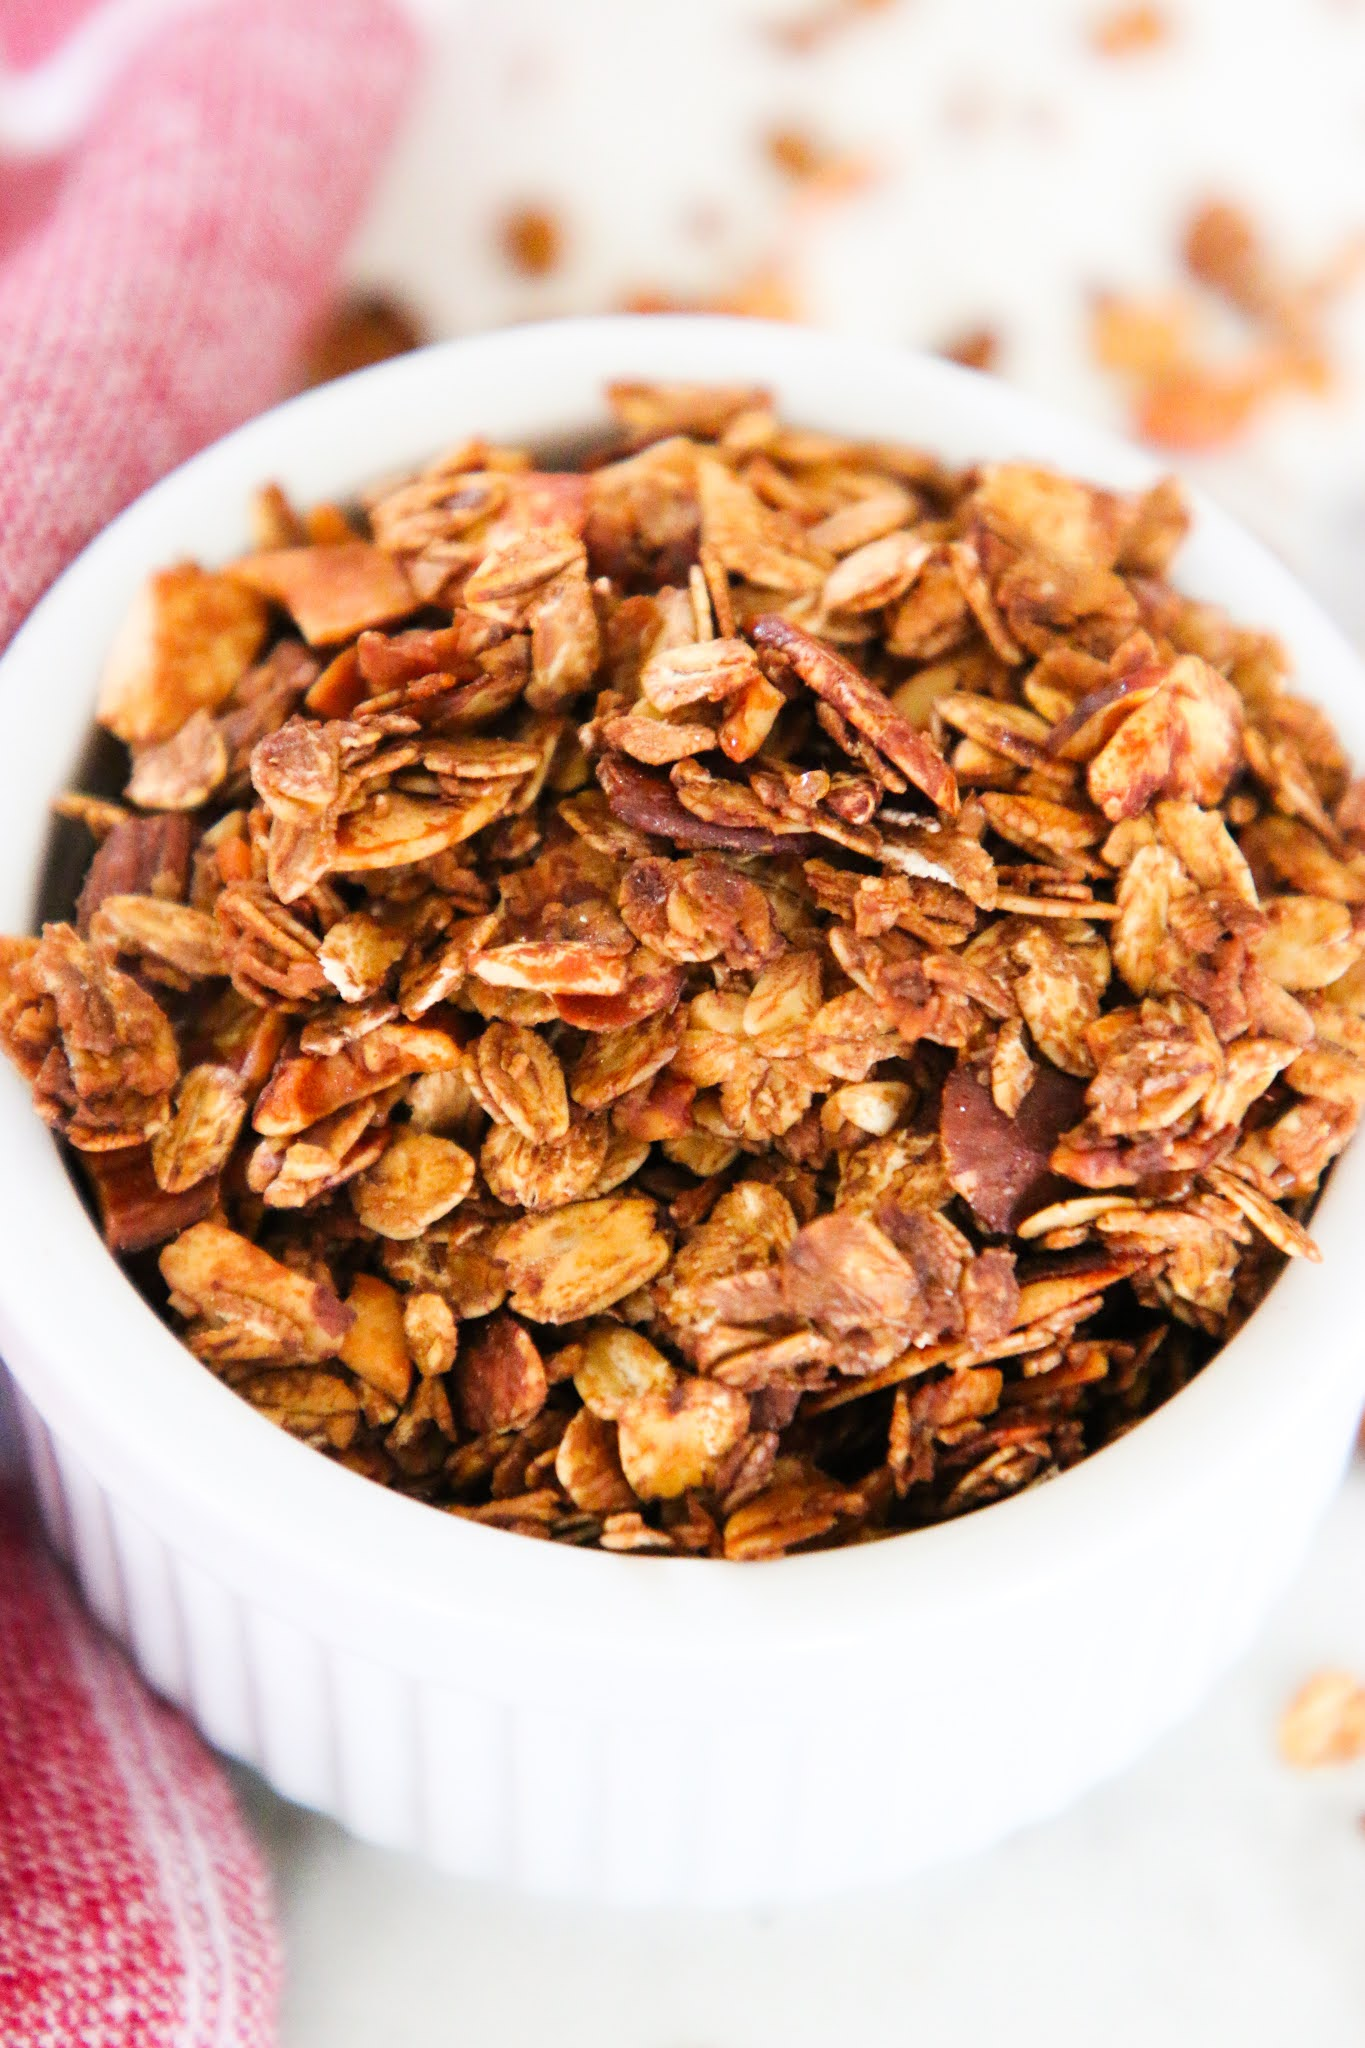 Granola in a small white bowl with granola scattered on the table with a red dish towel.